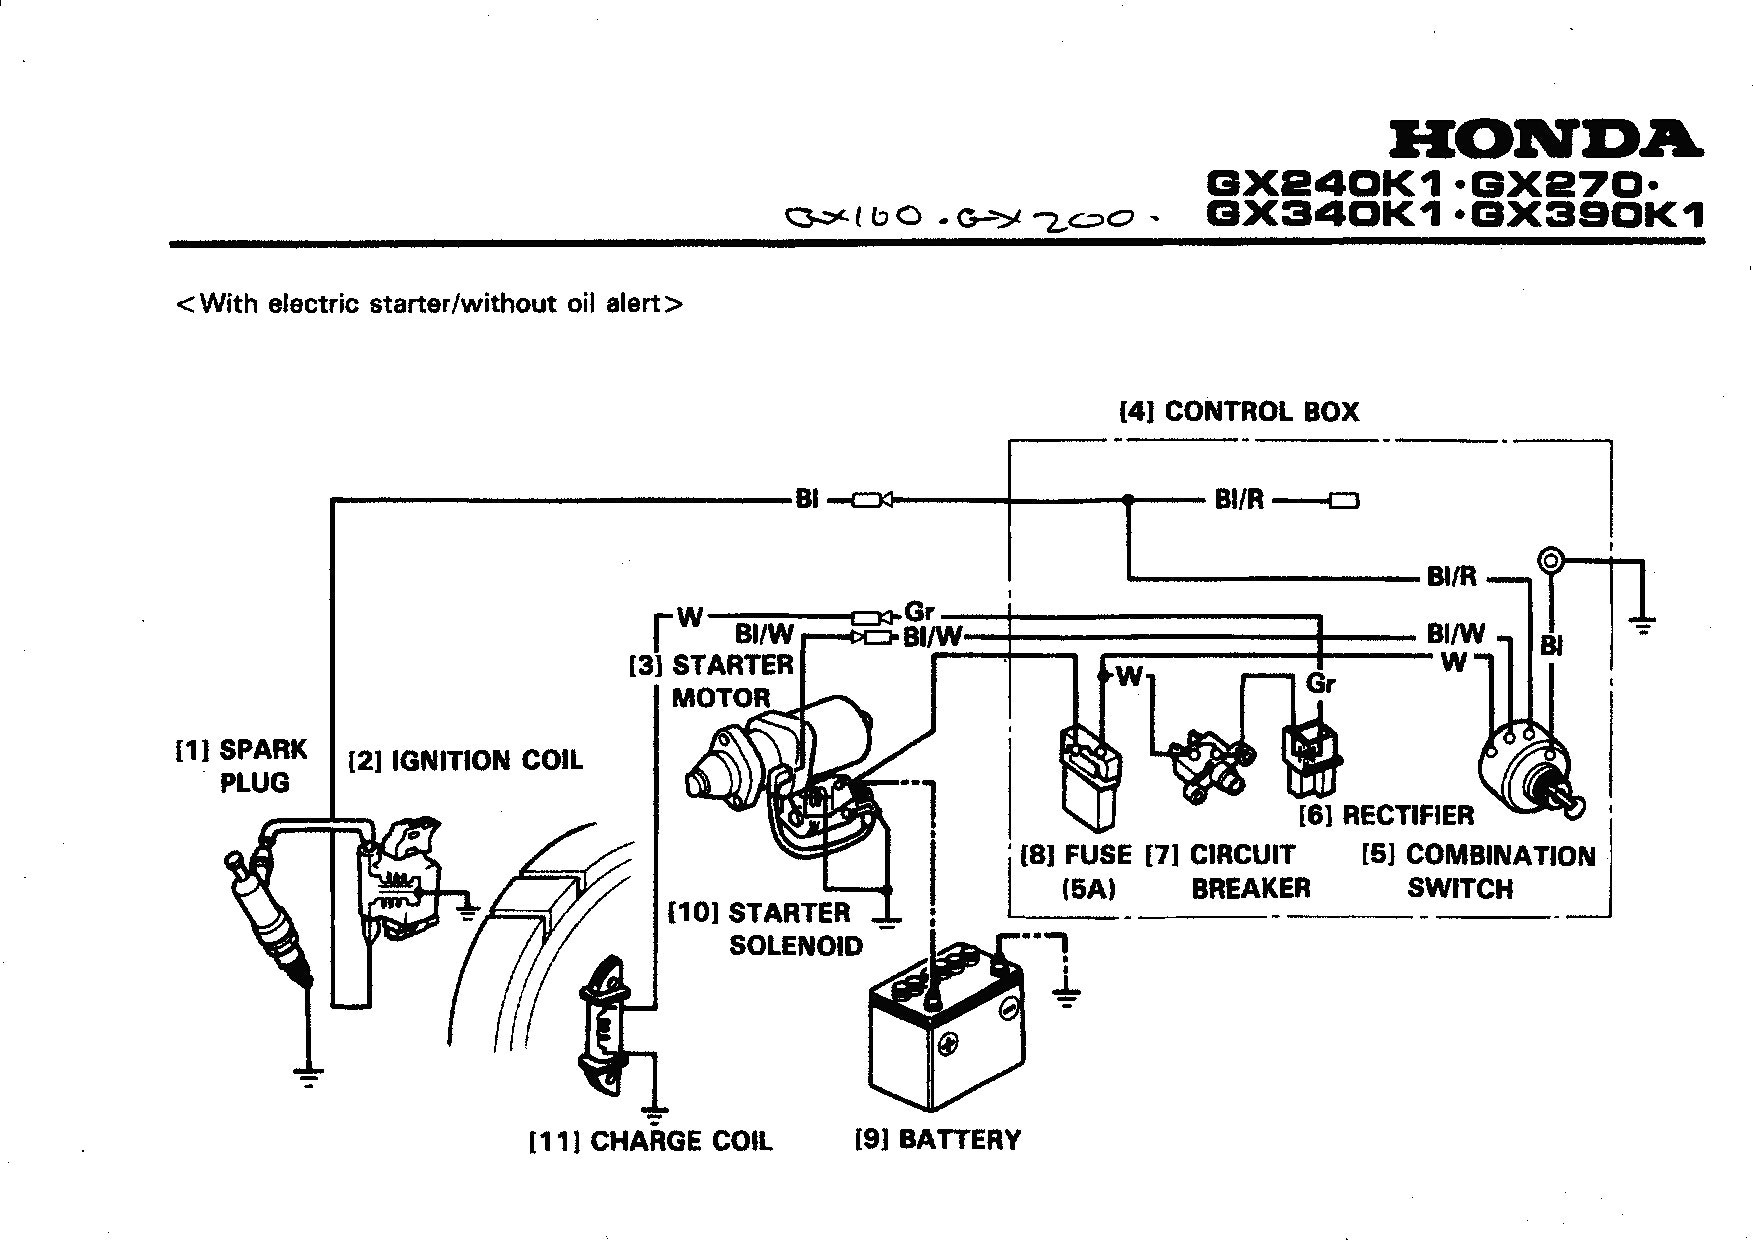 hight resolution of 62 et ignition switch wiring diagram control wiring diagram 62 et ignition switch wiring diagram